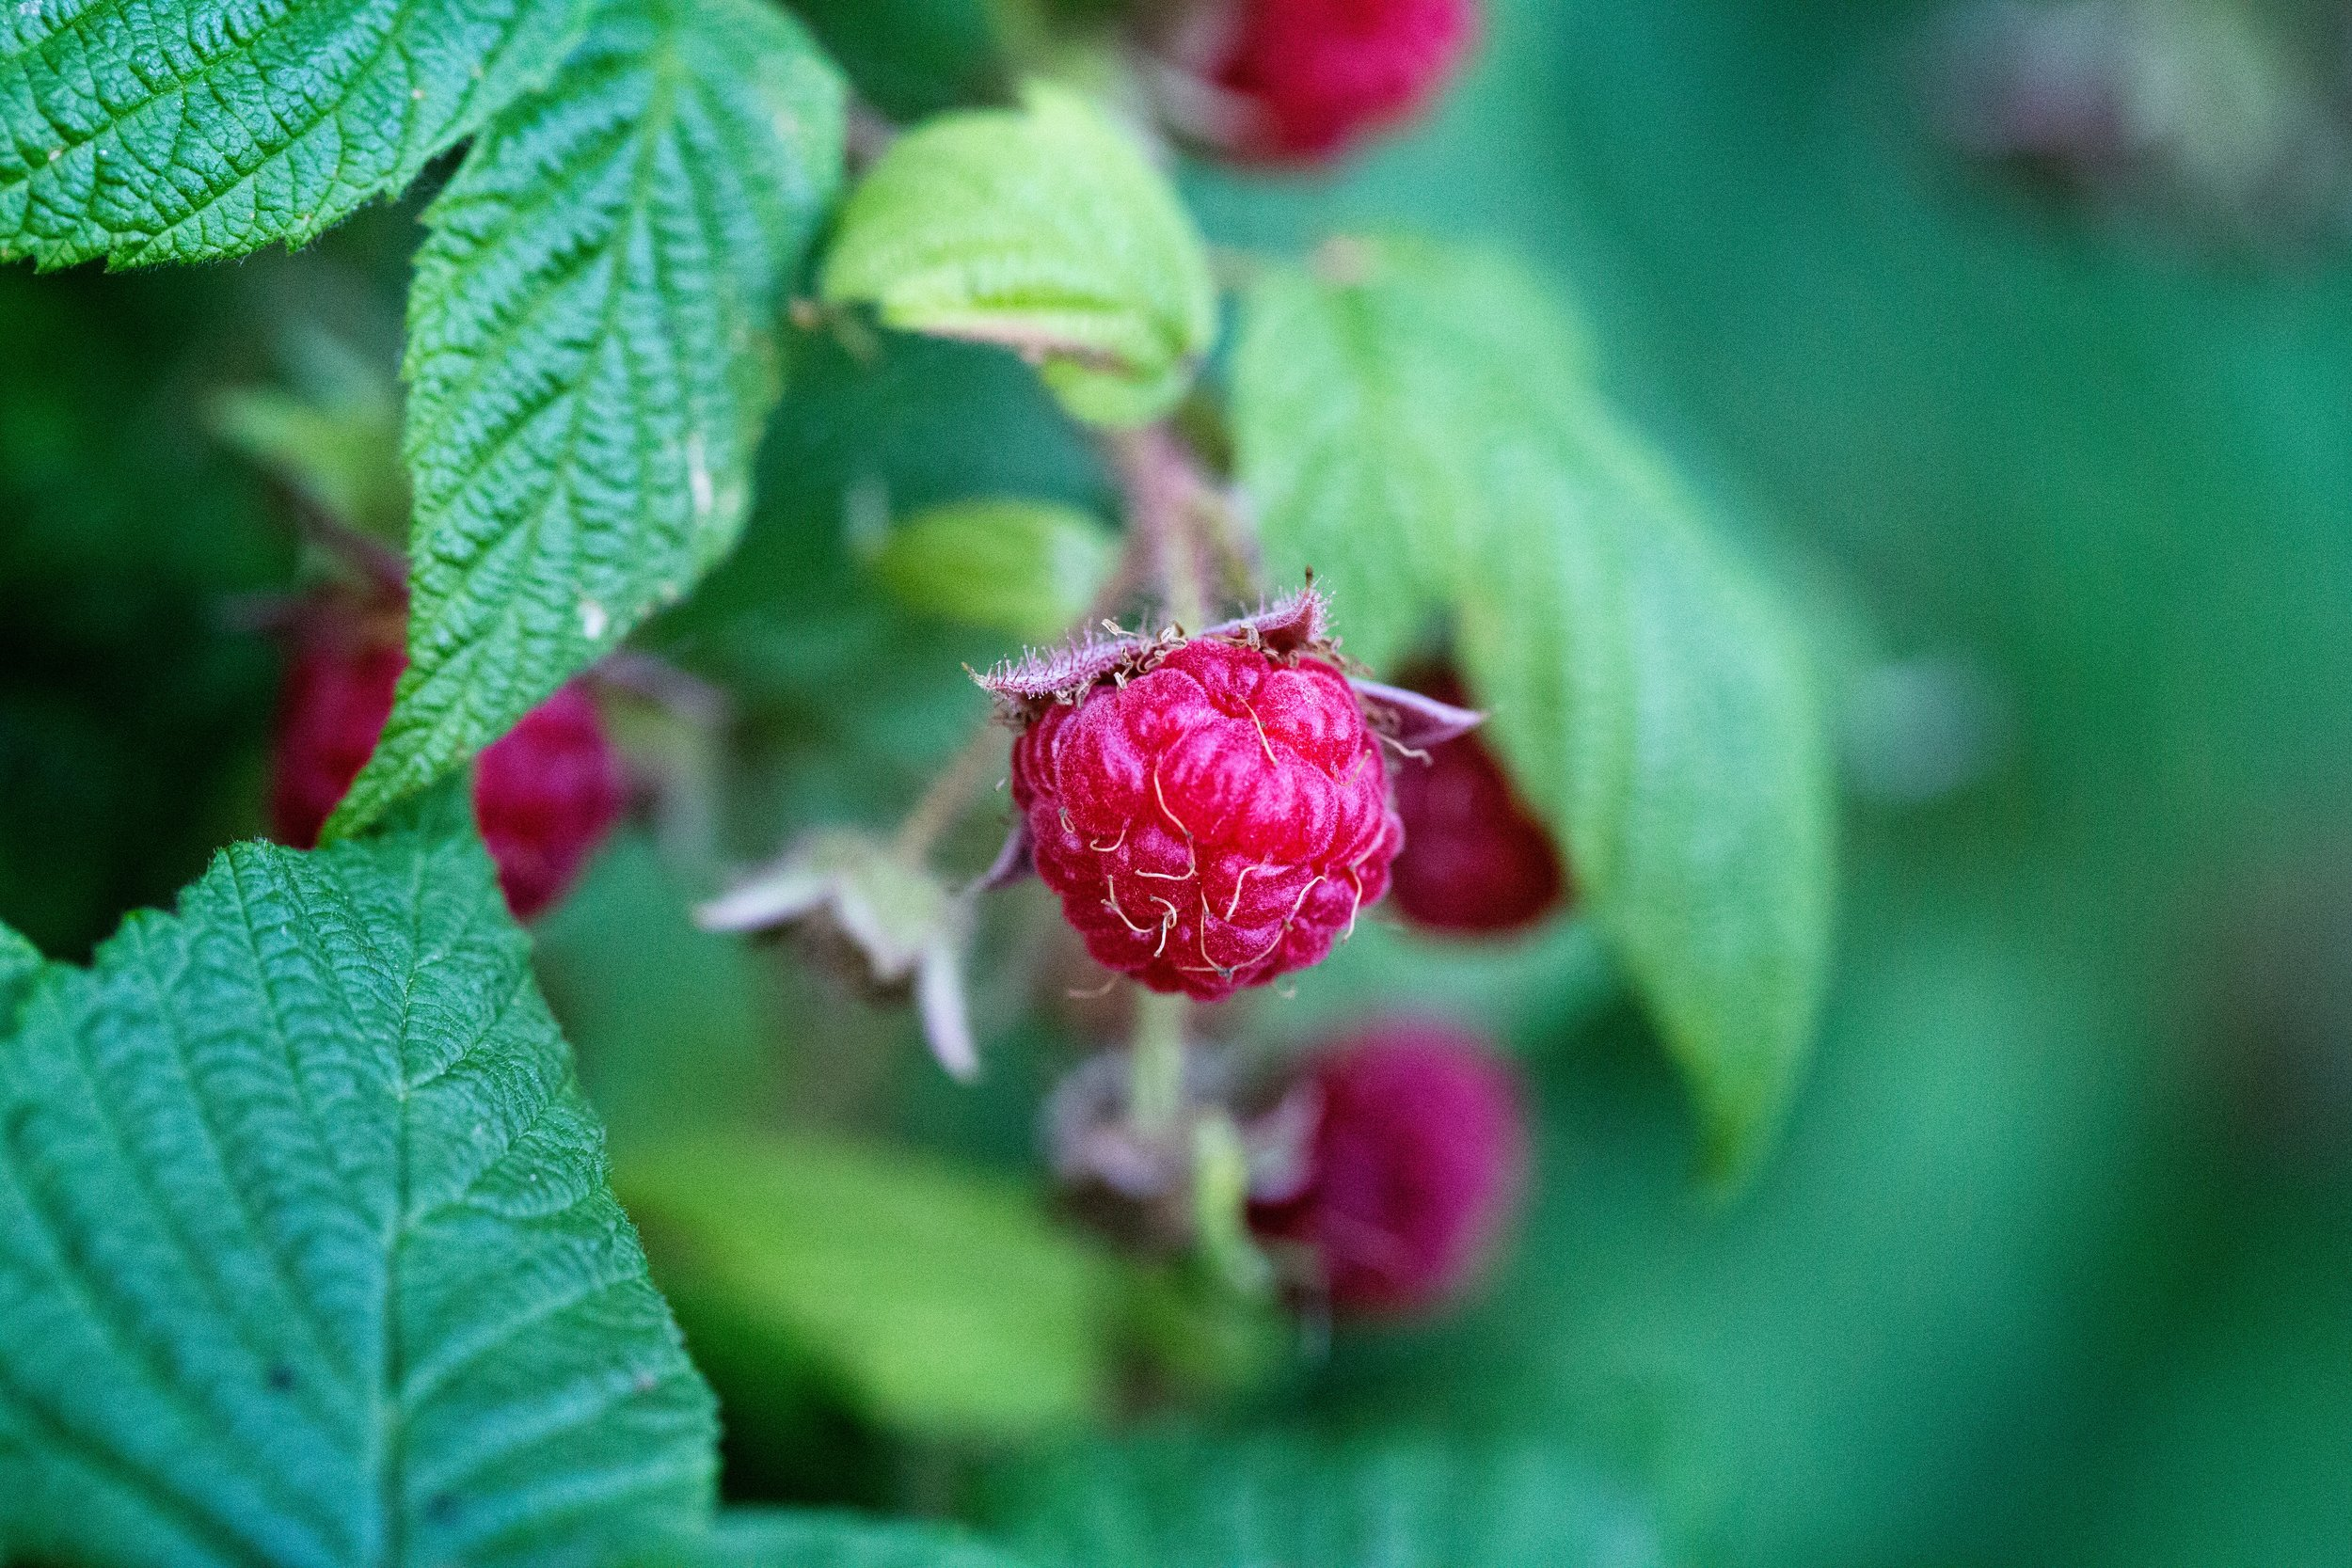 Raspberries growing on a bush - delicious!